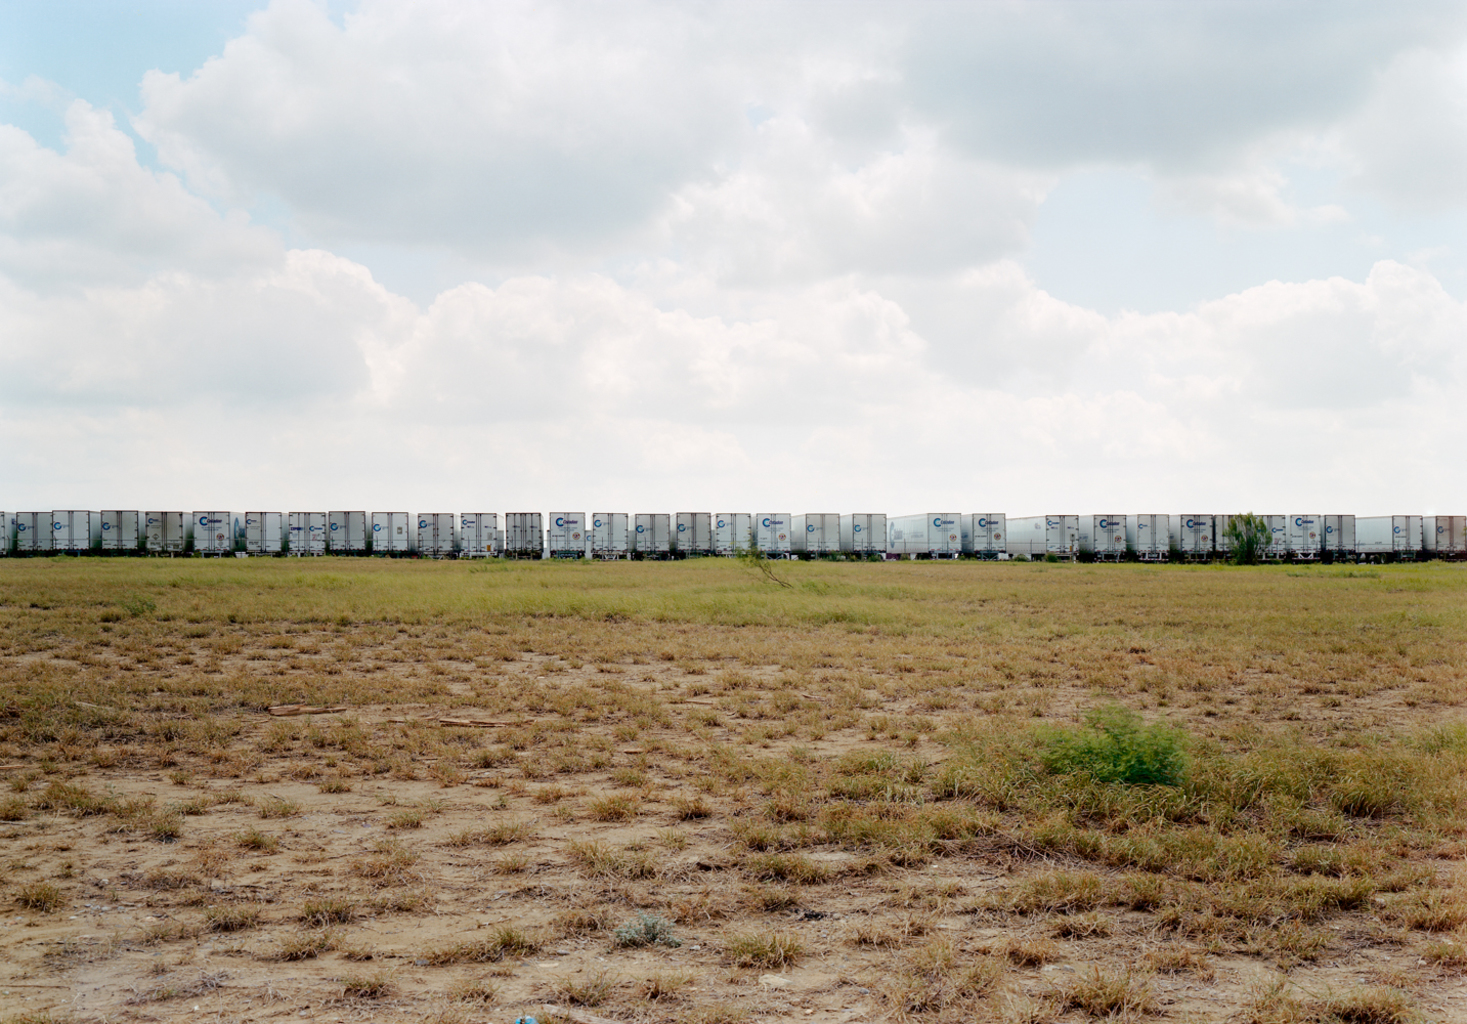 Untitled (Celadon trucks), Laredo, Texas, 2000  © Victoria Sambunaris